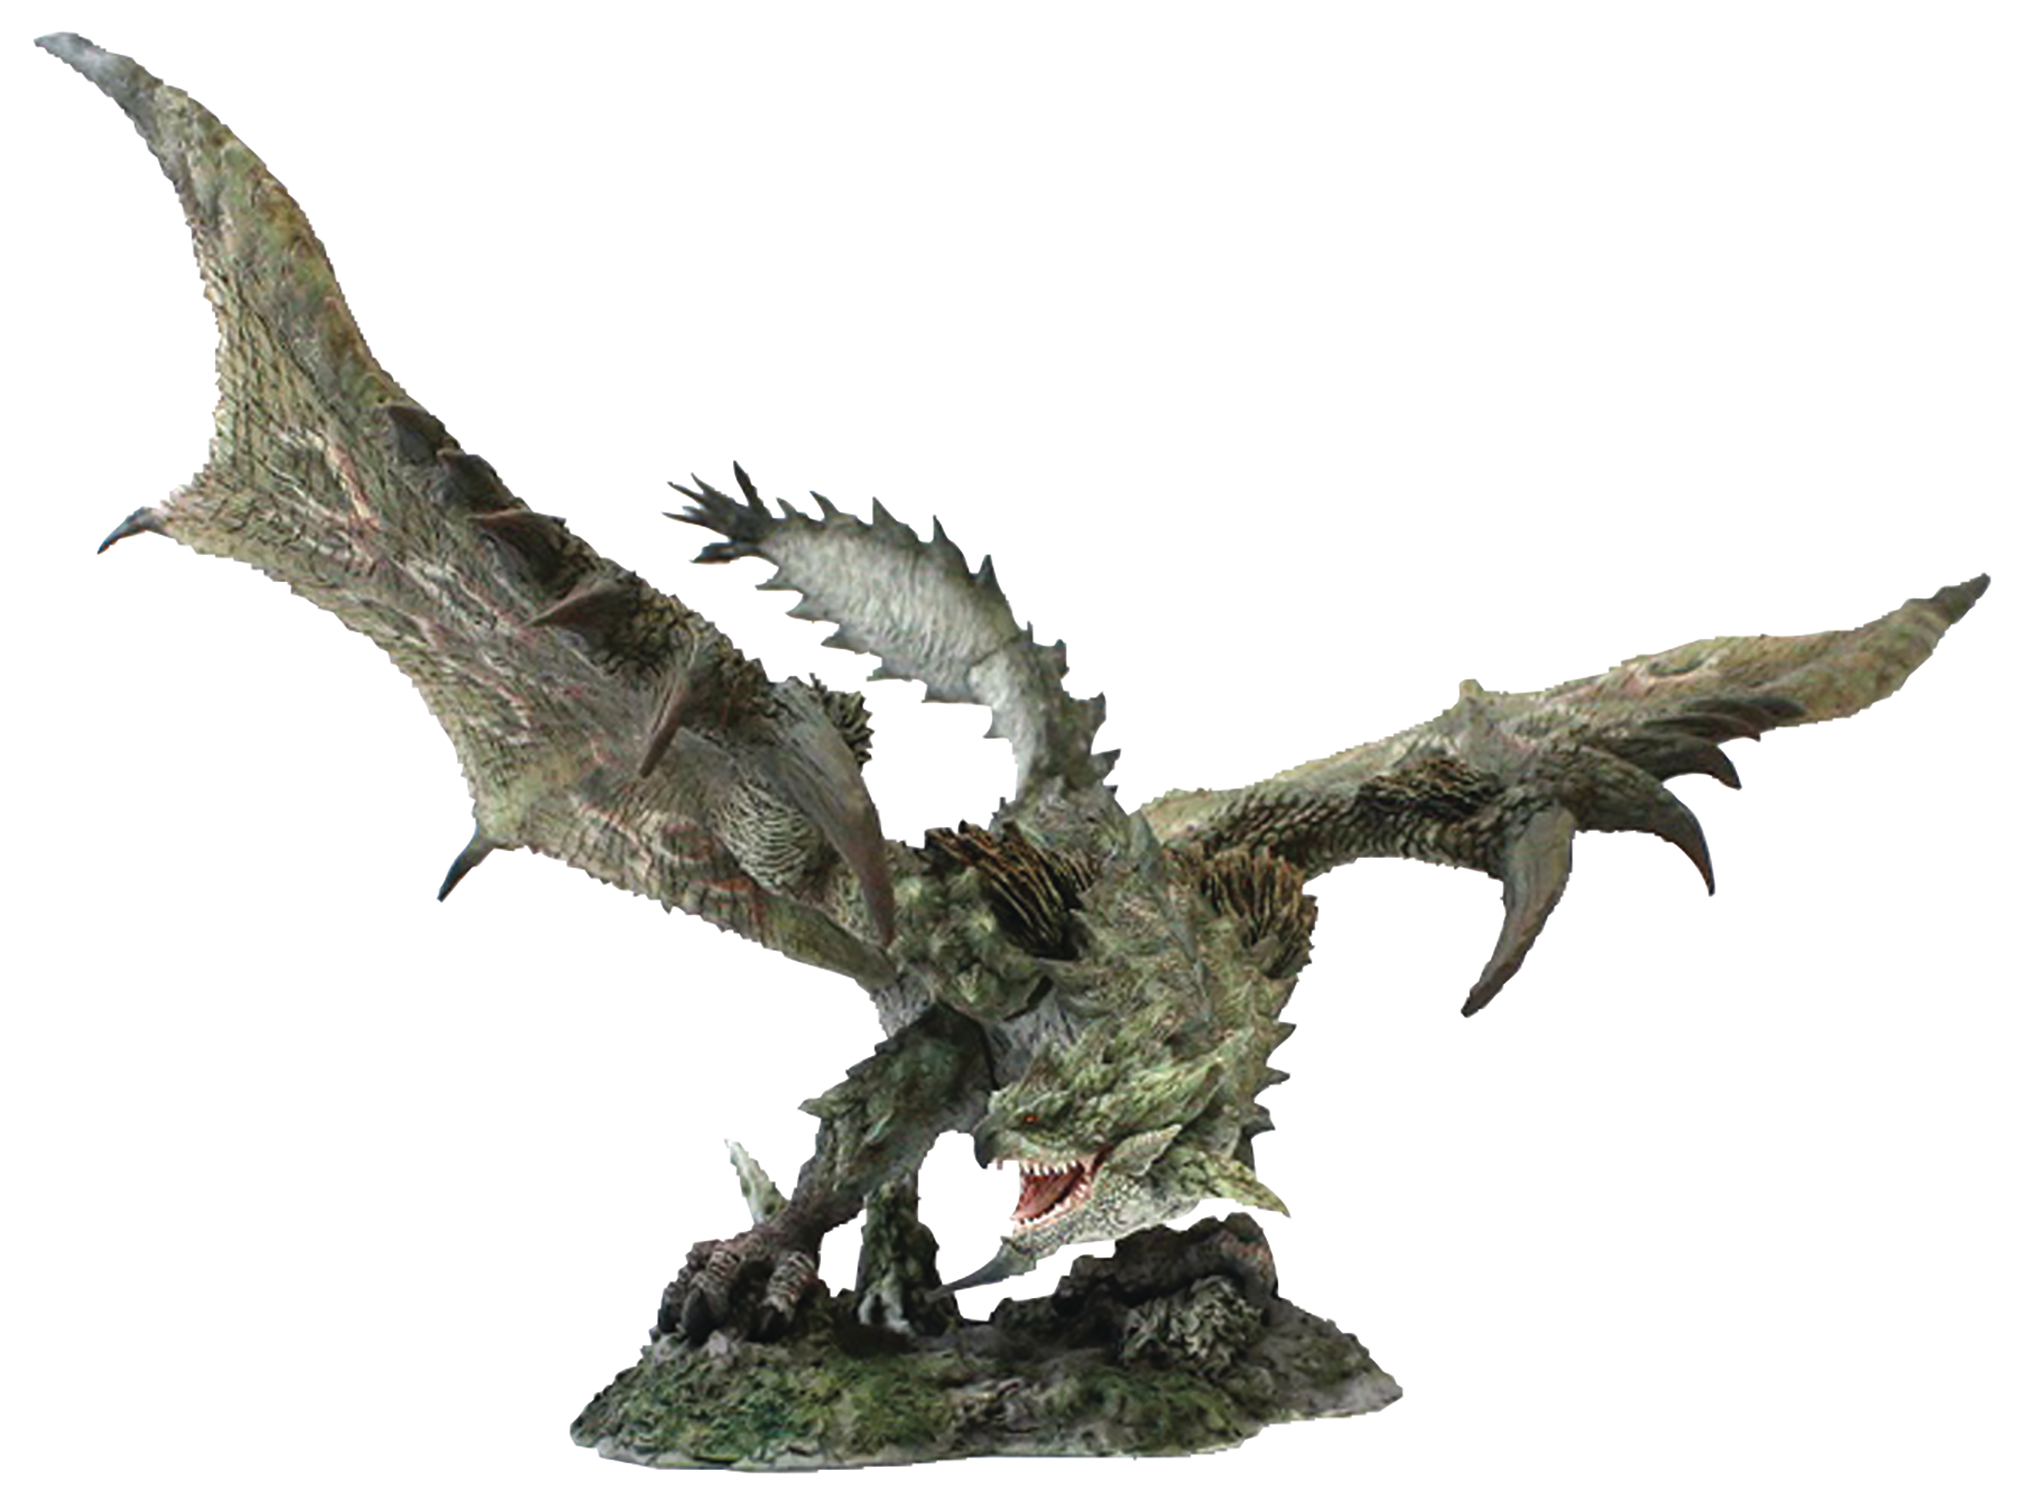 MONSTER HUNTER CFB RATHIAN MDL KIT RESELL VER